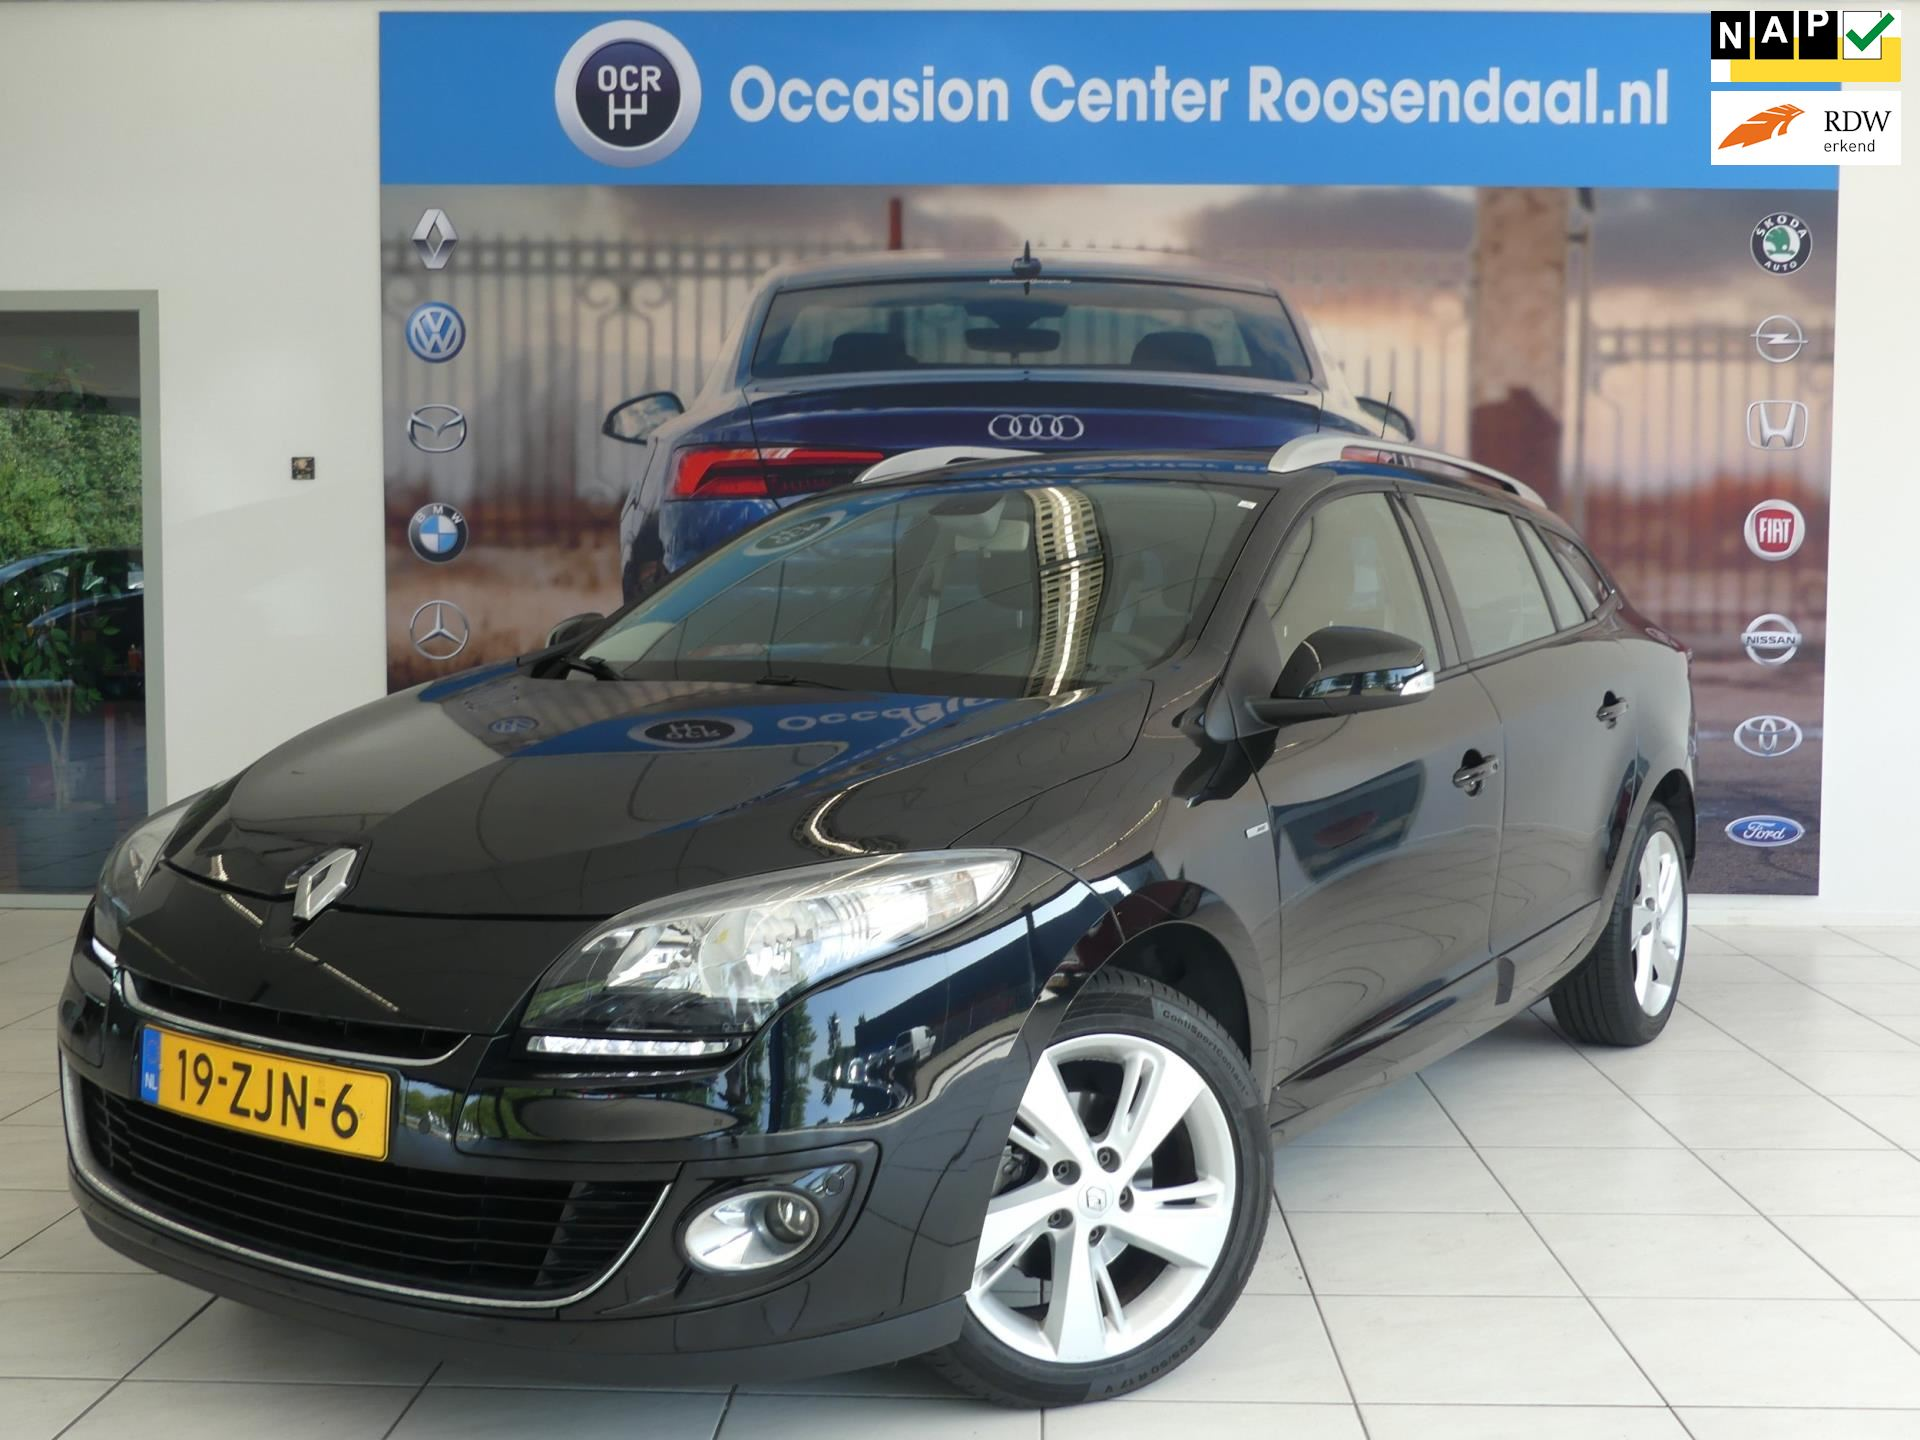 Renault Mégane Estate occasion - Occasion Center Roosendaal